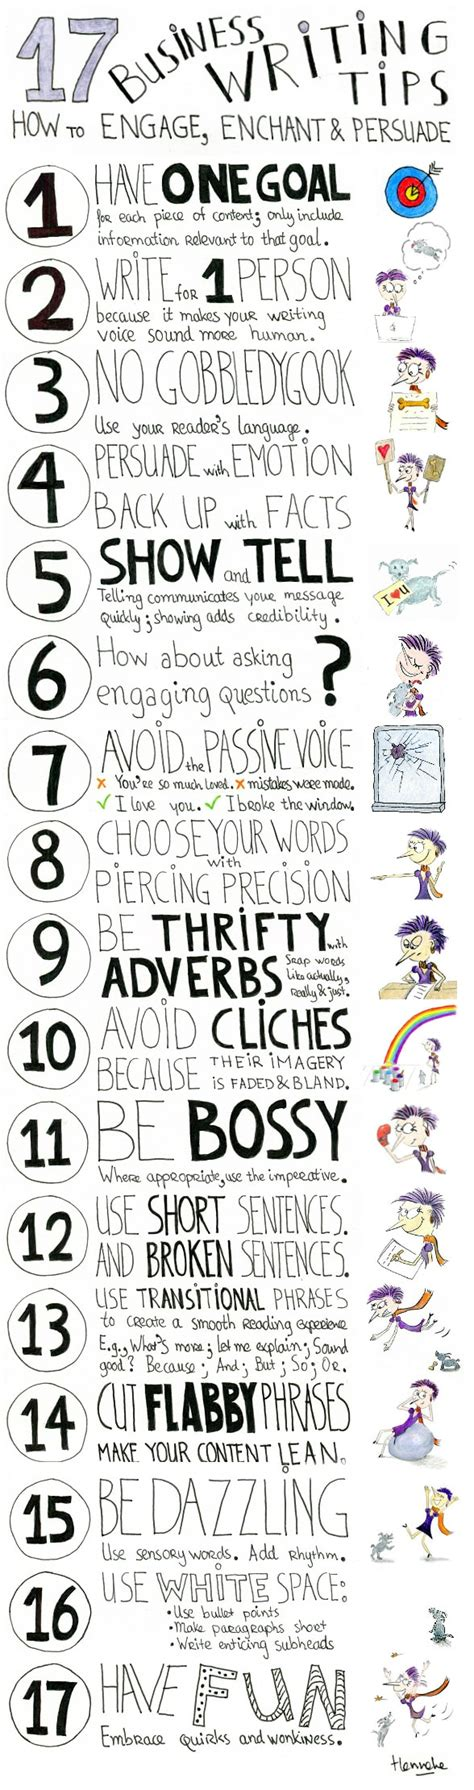 business letters writing tips 17 business writing tips how to engage and persuade